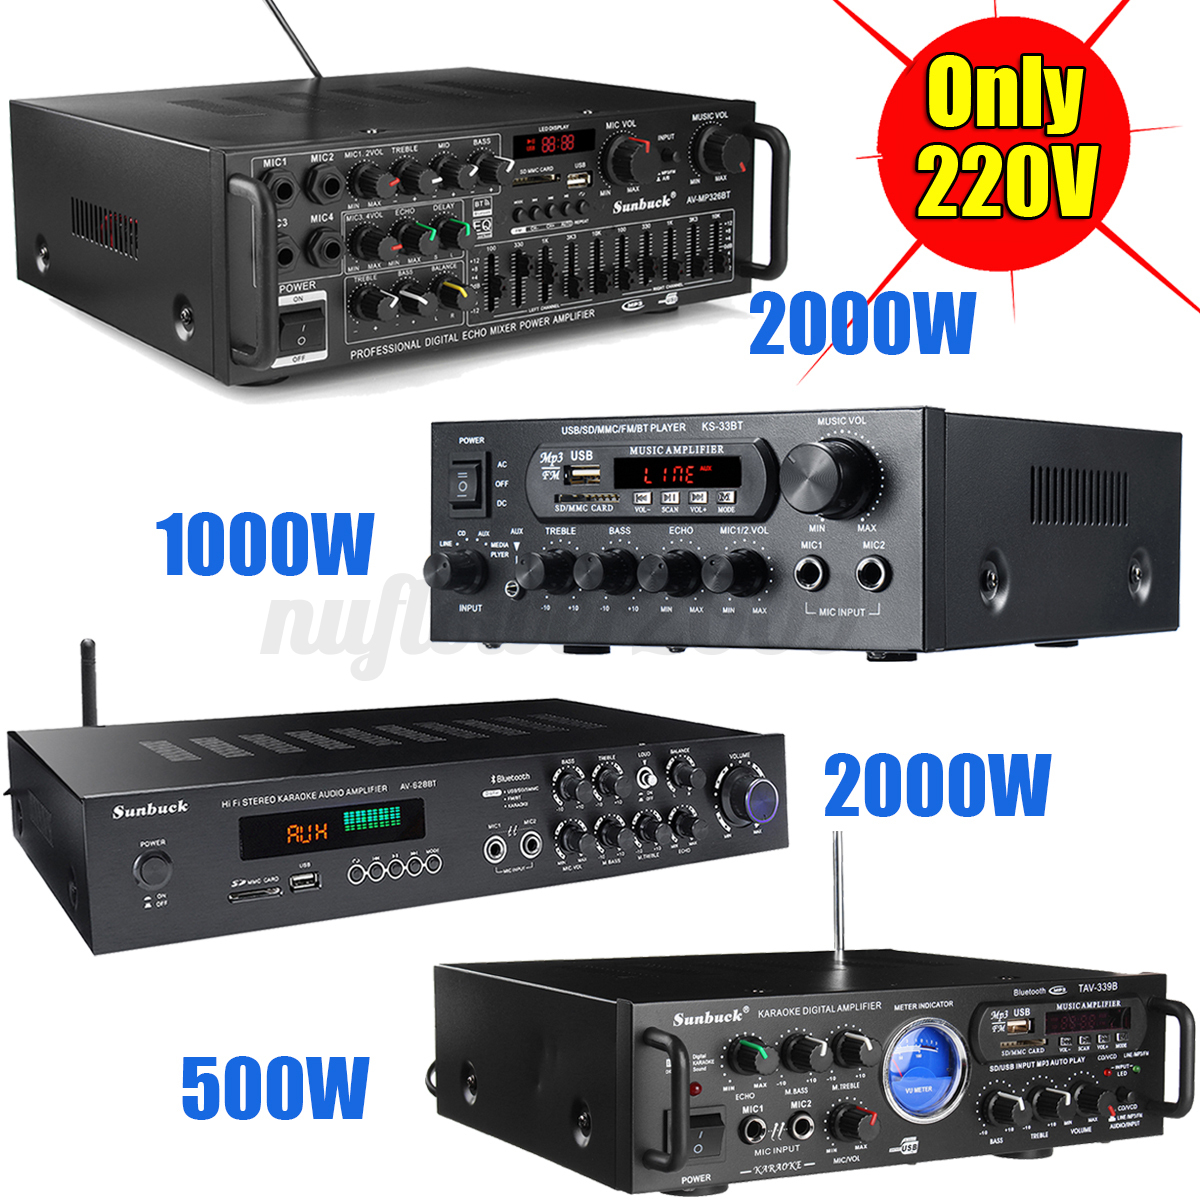 Audio Echo Details About 2000w Watts 220v Home Bluetooth Power Amplifier Stereo Amp Receiver Mixer Echo